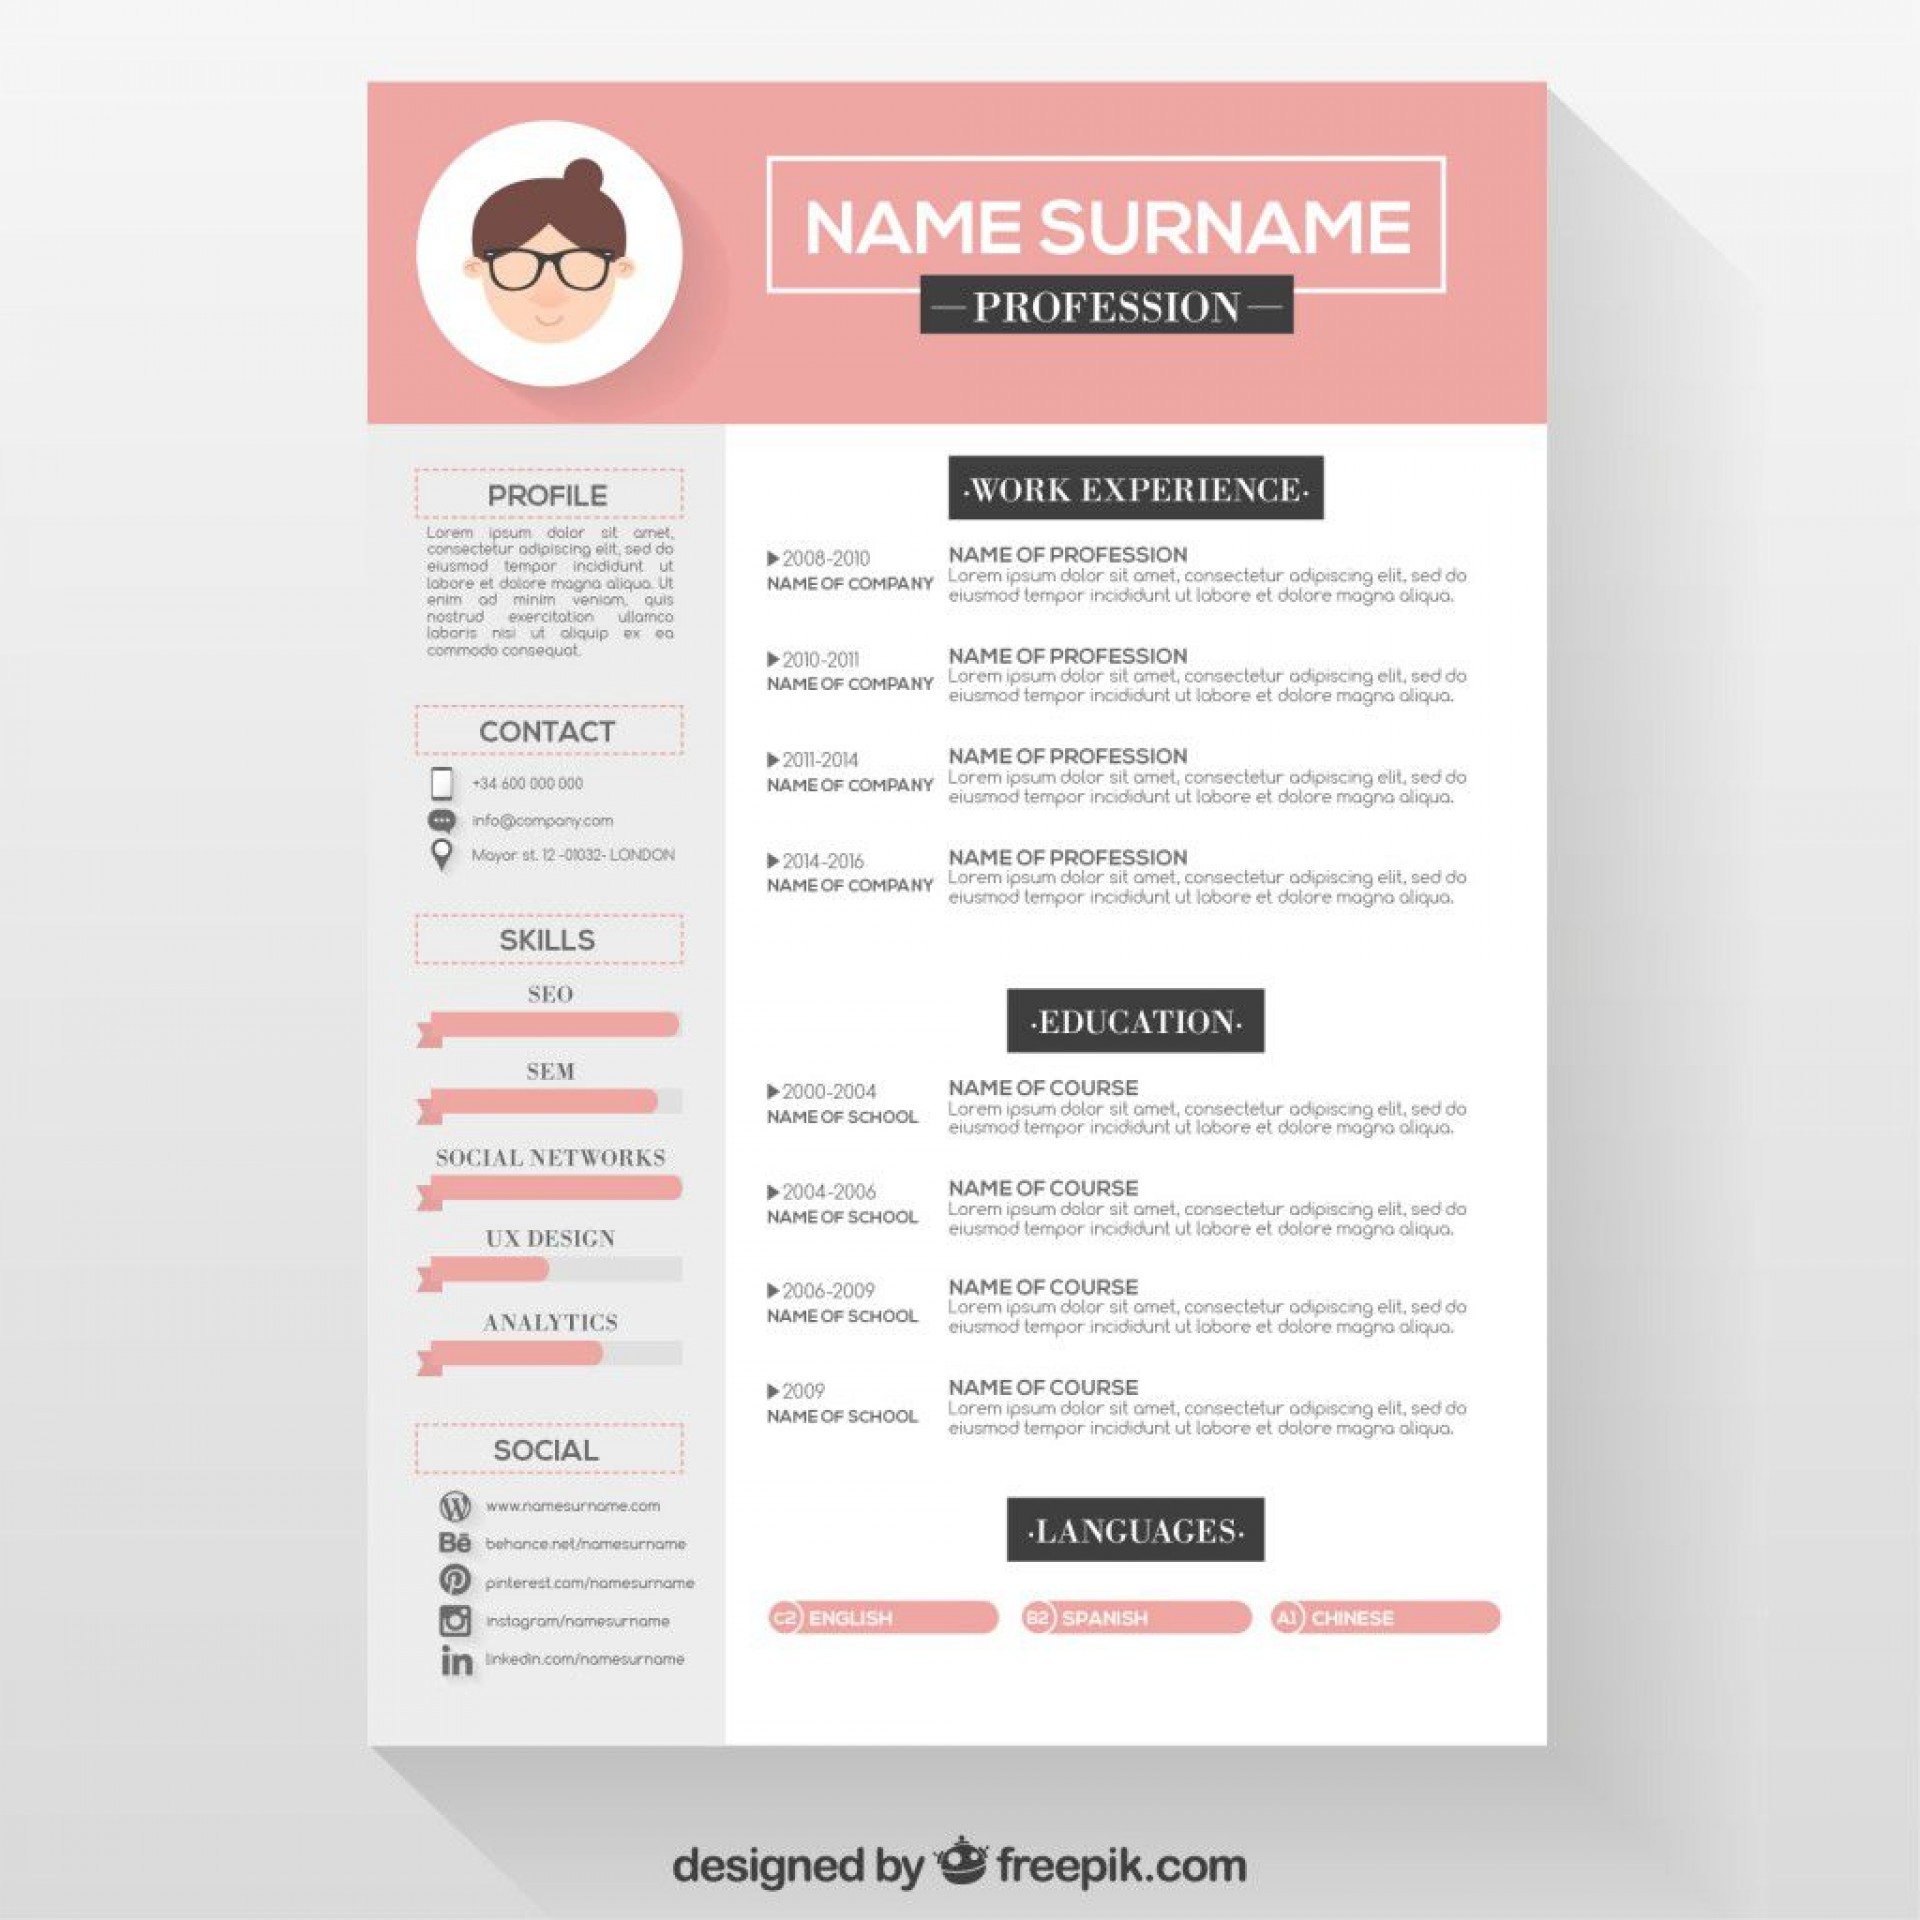 007 Fascinating Curriculum Vitae Template Free Design  Download South Africa Format Pdf Sample1920